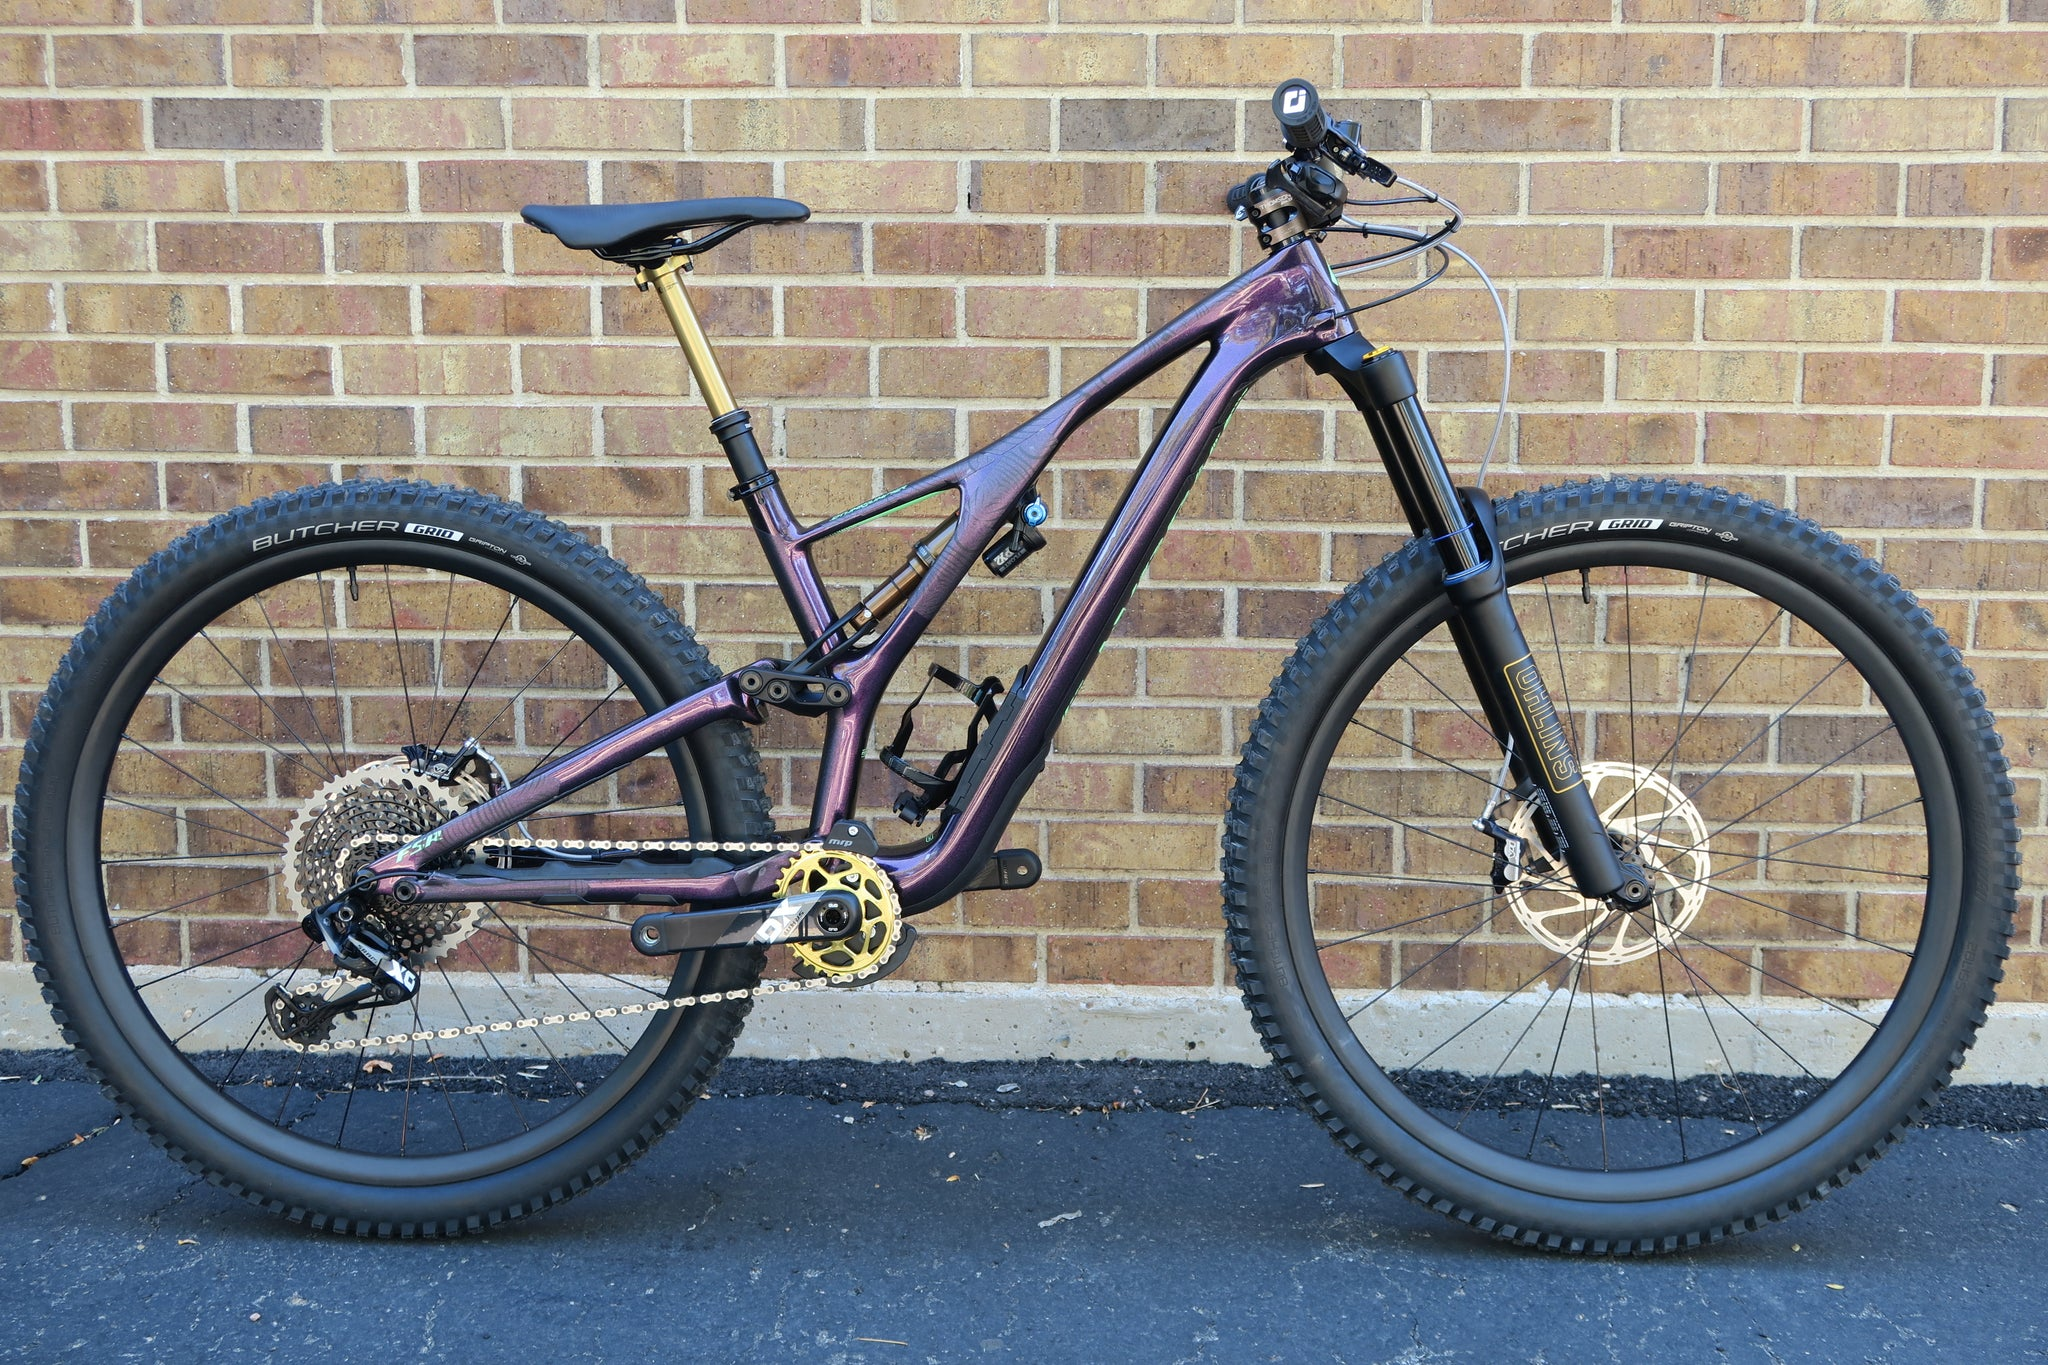 "2019 S-WORKS STUMPJUMPER 29"" CUSTOM BUILD"